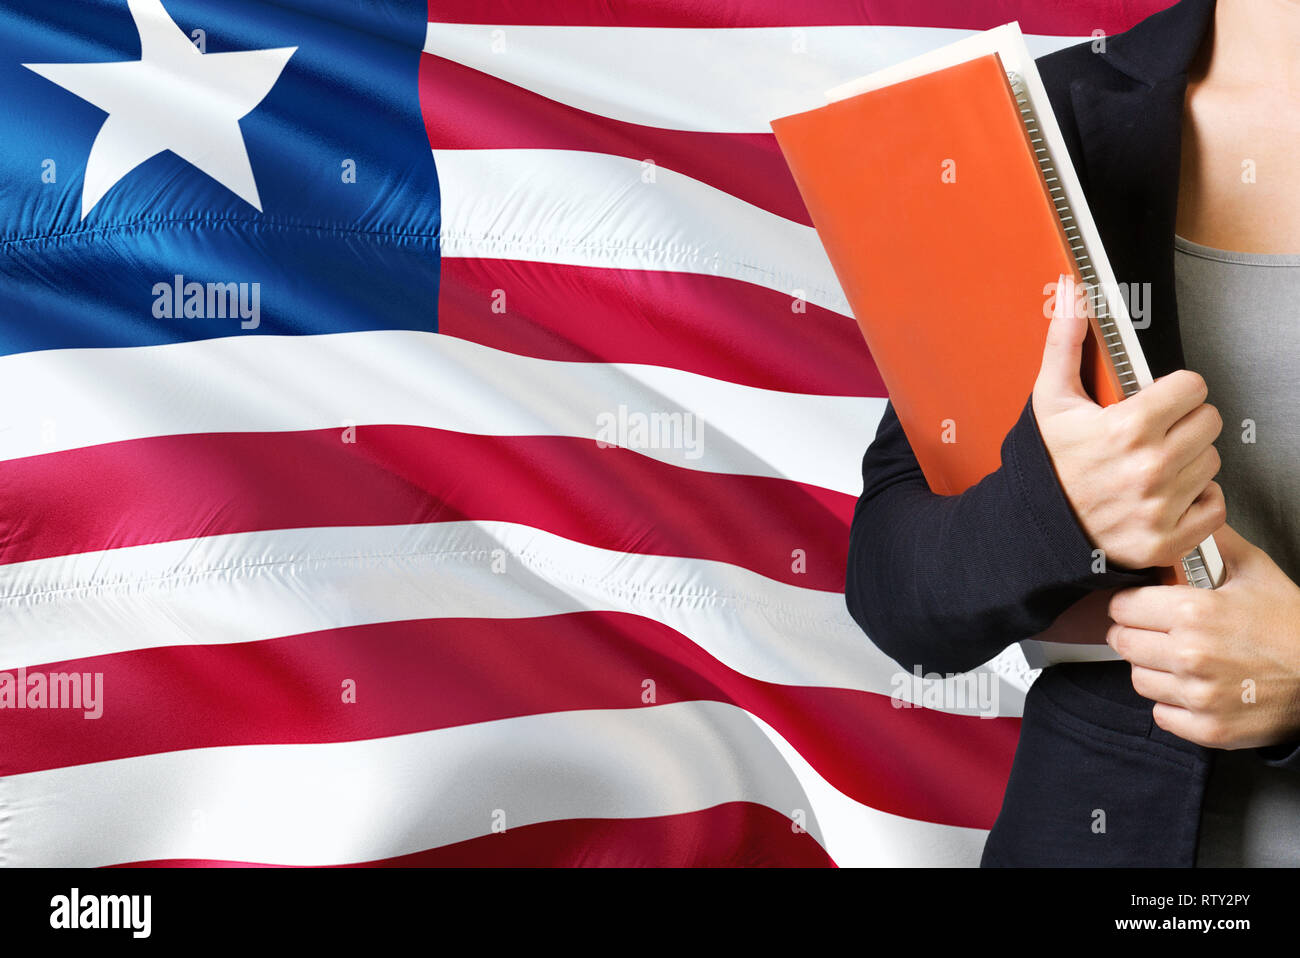 Learning Liberian language concept. Young woman standing with the Liberia flag in the background. Teacher holding books, orange blank book cover. - Stock Image